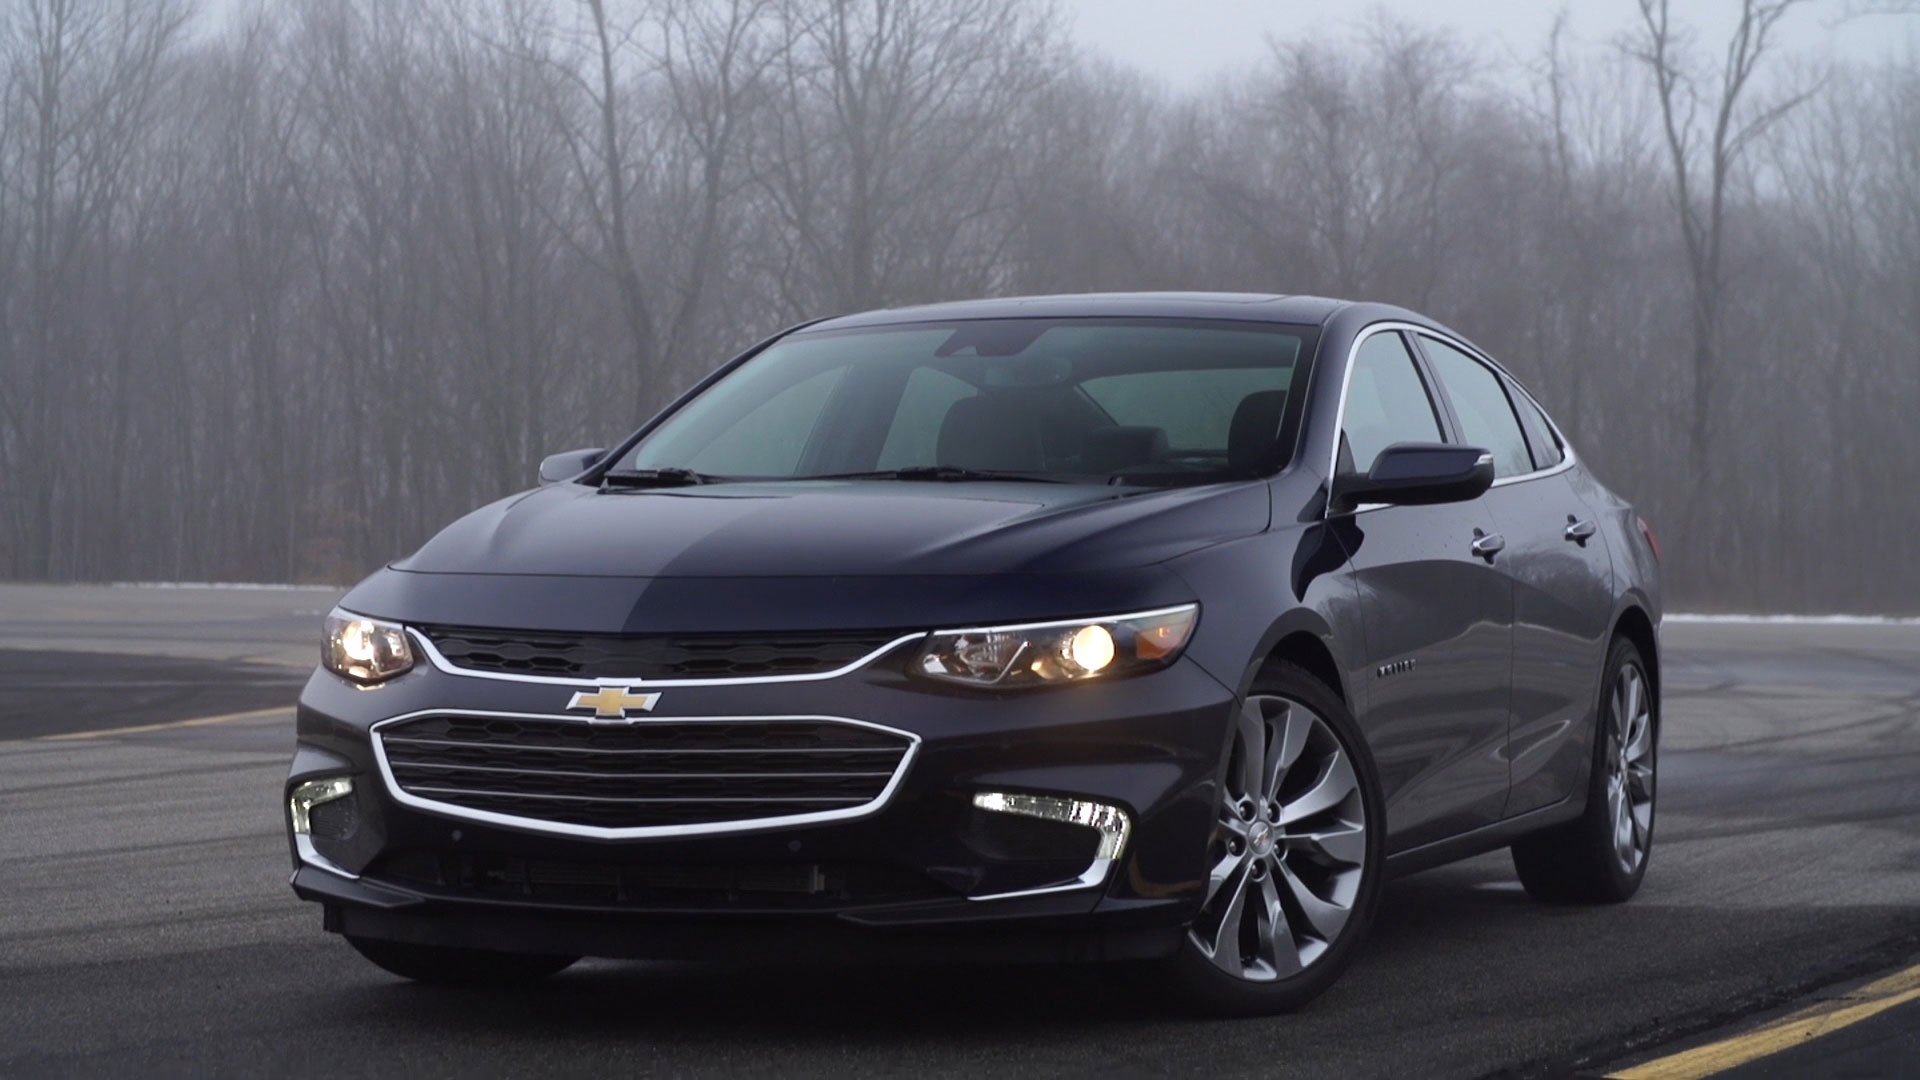 2016 Chevrolet Malibu Review - Consumer Reports